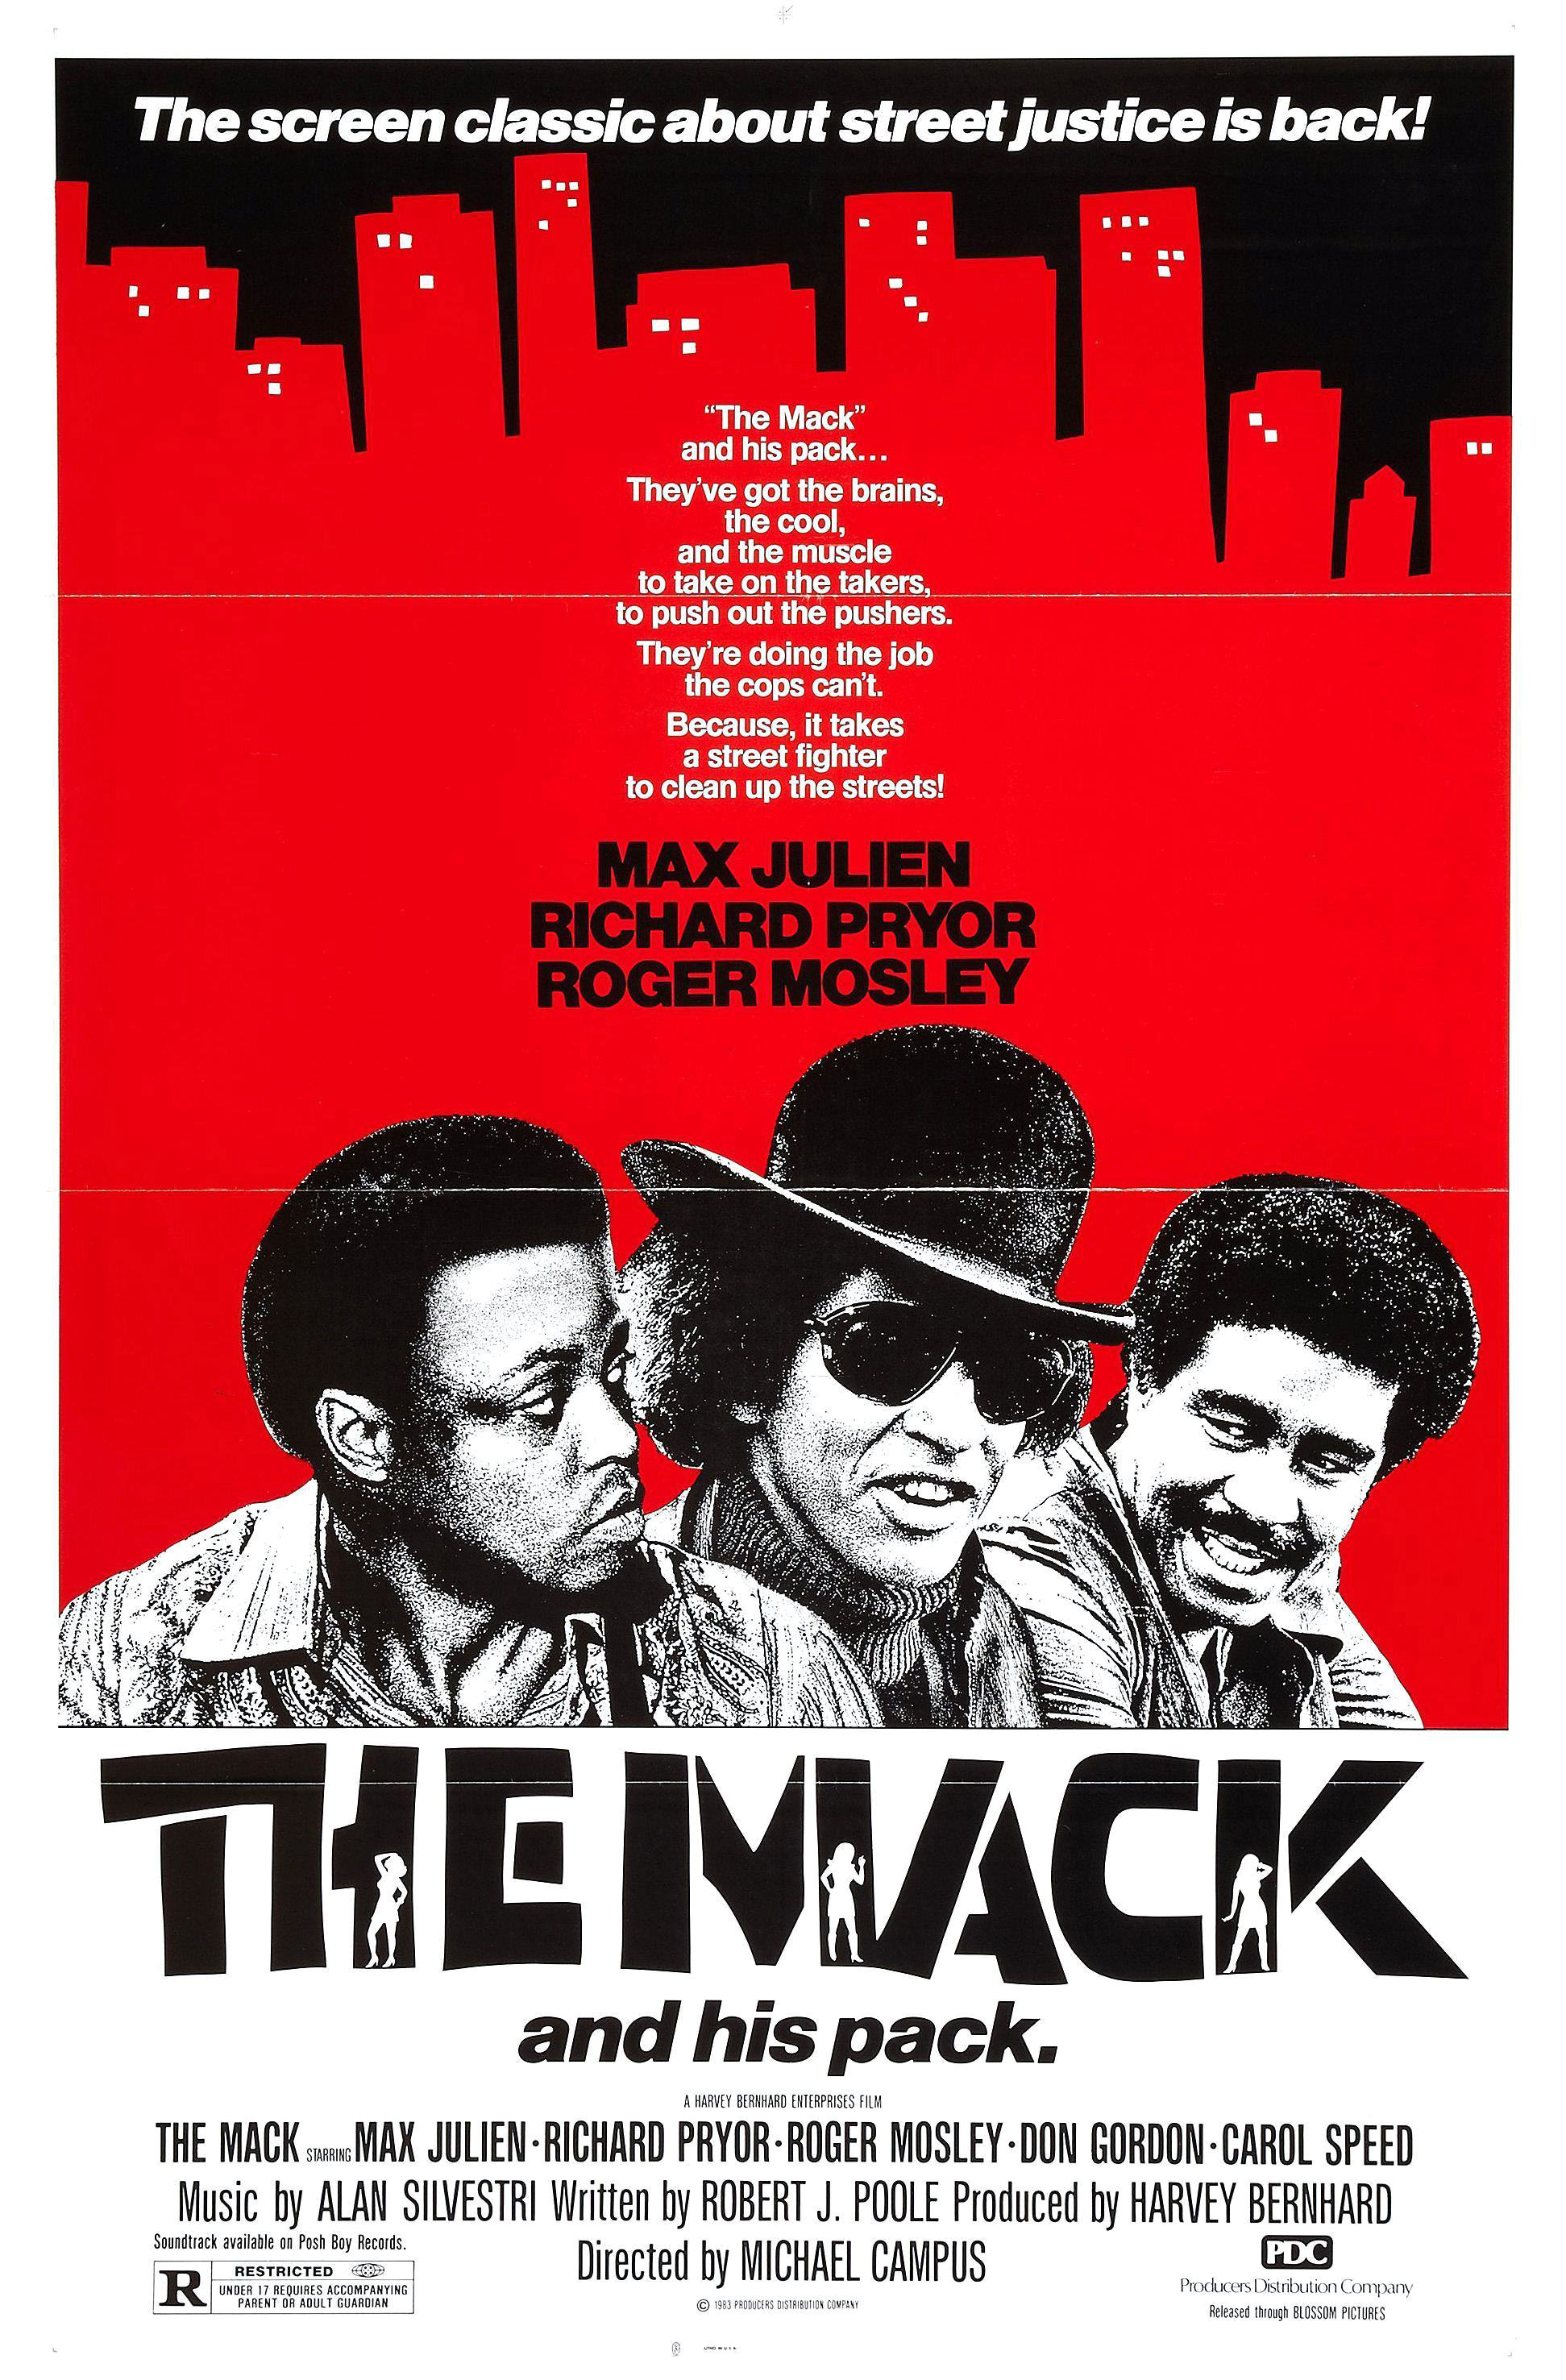 blaxploitation films By laurence washington blaxploitation was a cultural film explosion between 1970 and 1980, there were over 200 films released by major and independent studios which touted major black characters and themes demonstrating they had enough of the man blaxploitation films crossed all movie genre.